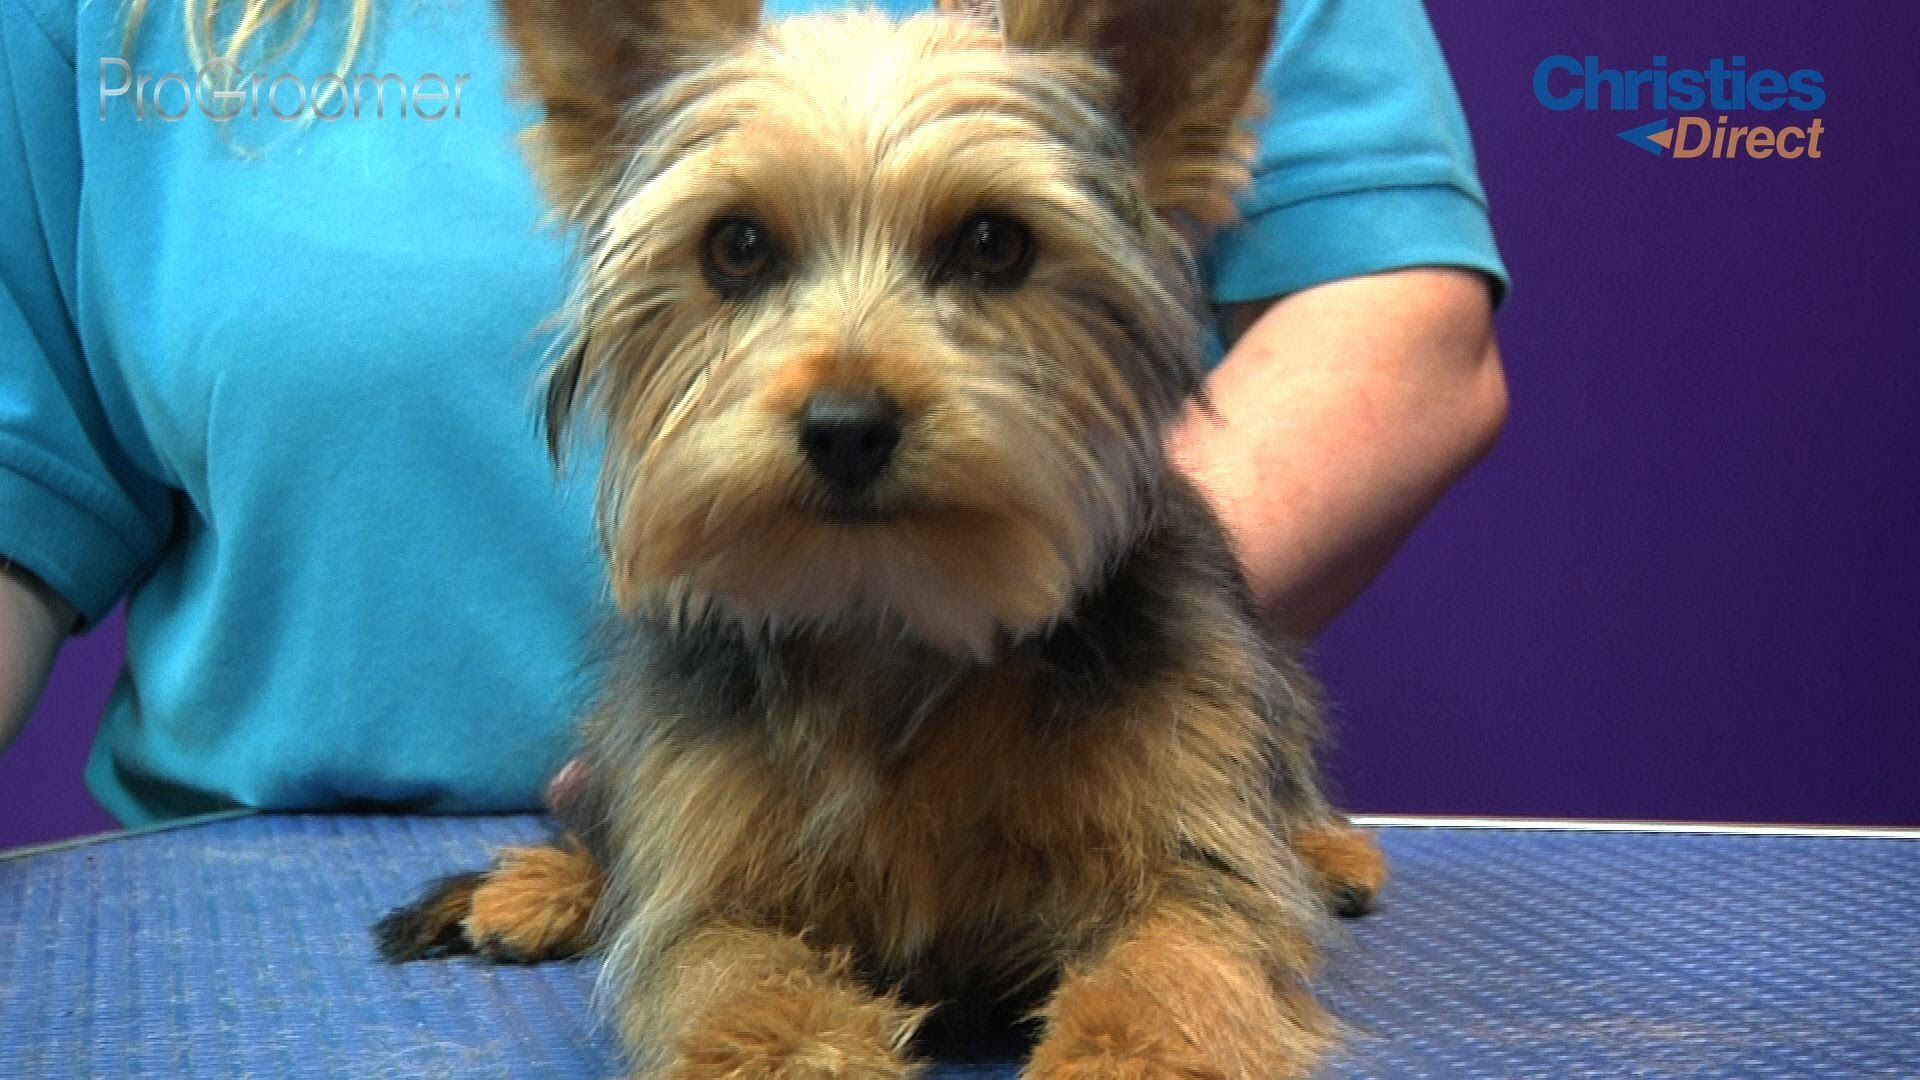 Watch The Latest Progroomer Grooming Guide Sponsored By Christies Direct Where Kelly Murfet Of Doggie D Yorkshire Terrier Puppies Yorkshire Terrier Yorkie Dogs